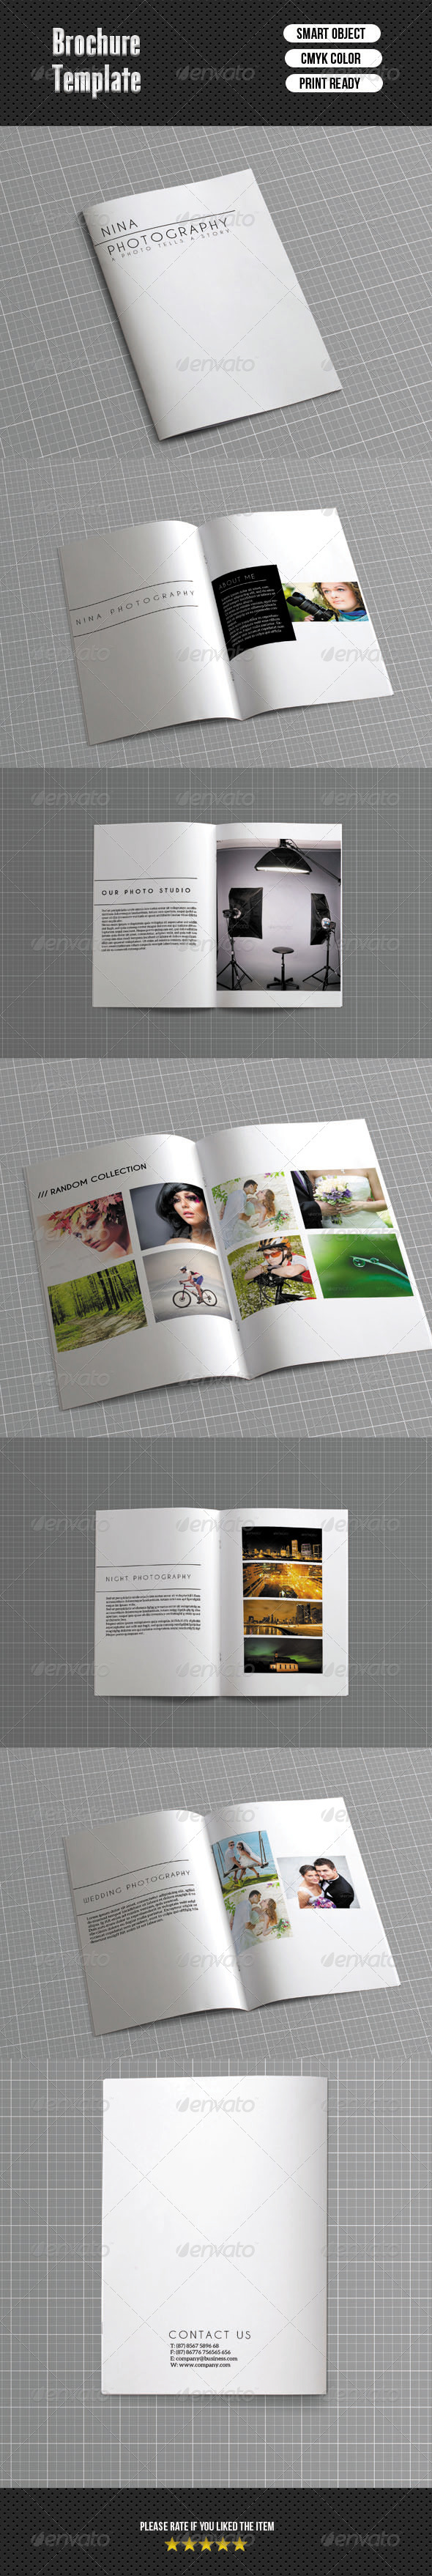 Bifold Brochure-Photographer - Portfolio Brochures